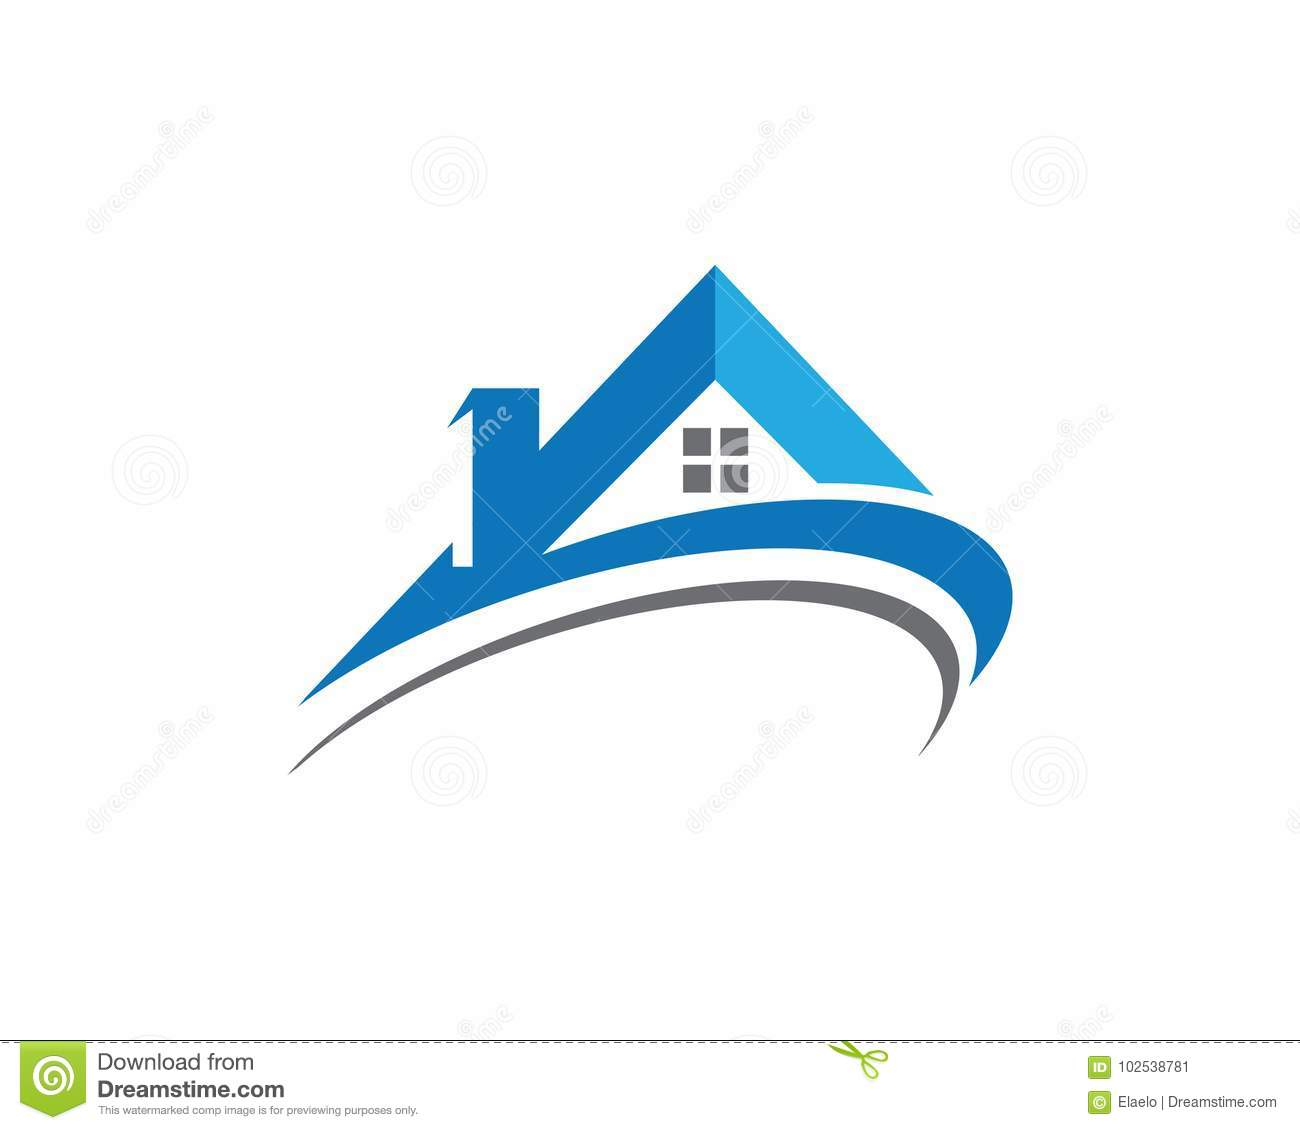 Logo Entreprise Design Property And Construction Logo Design For Business Corporate Si